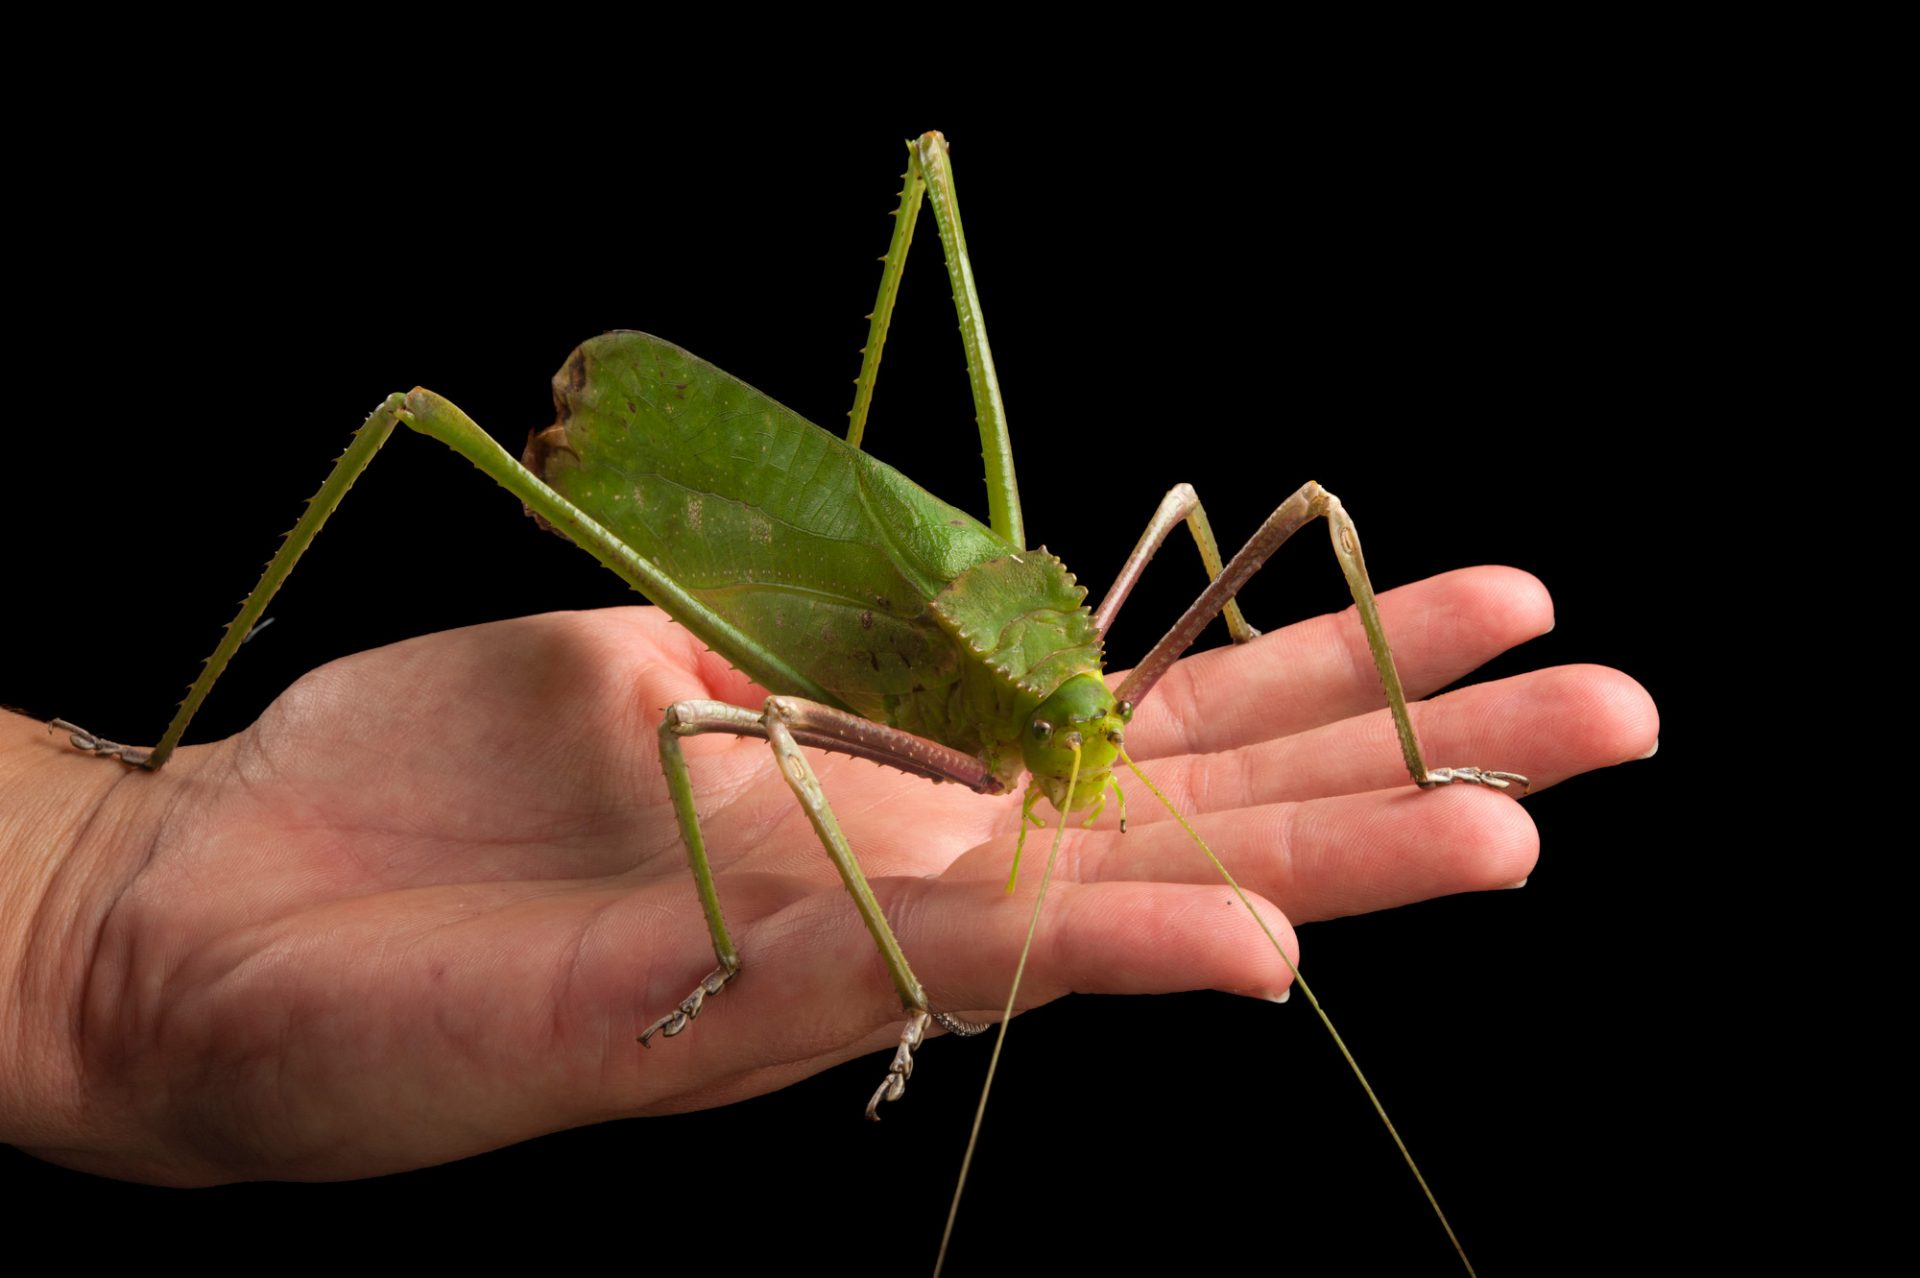 A giant Malayan katydid (Macrolyristes corporalis) at the Omaha Henry Doorly Zoo, Omaha, Nebraska.